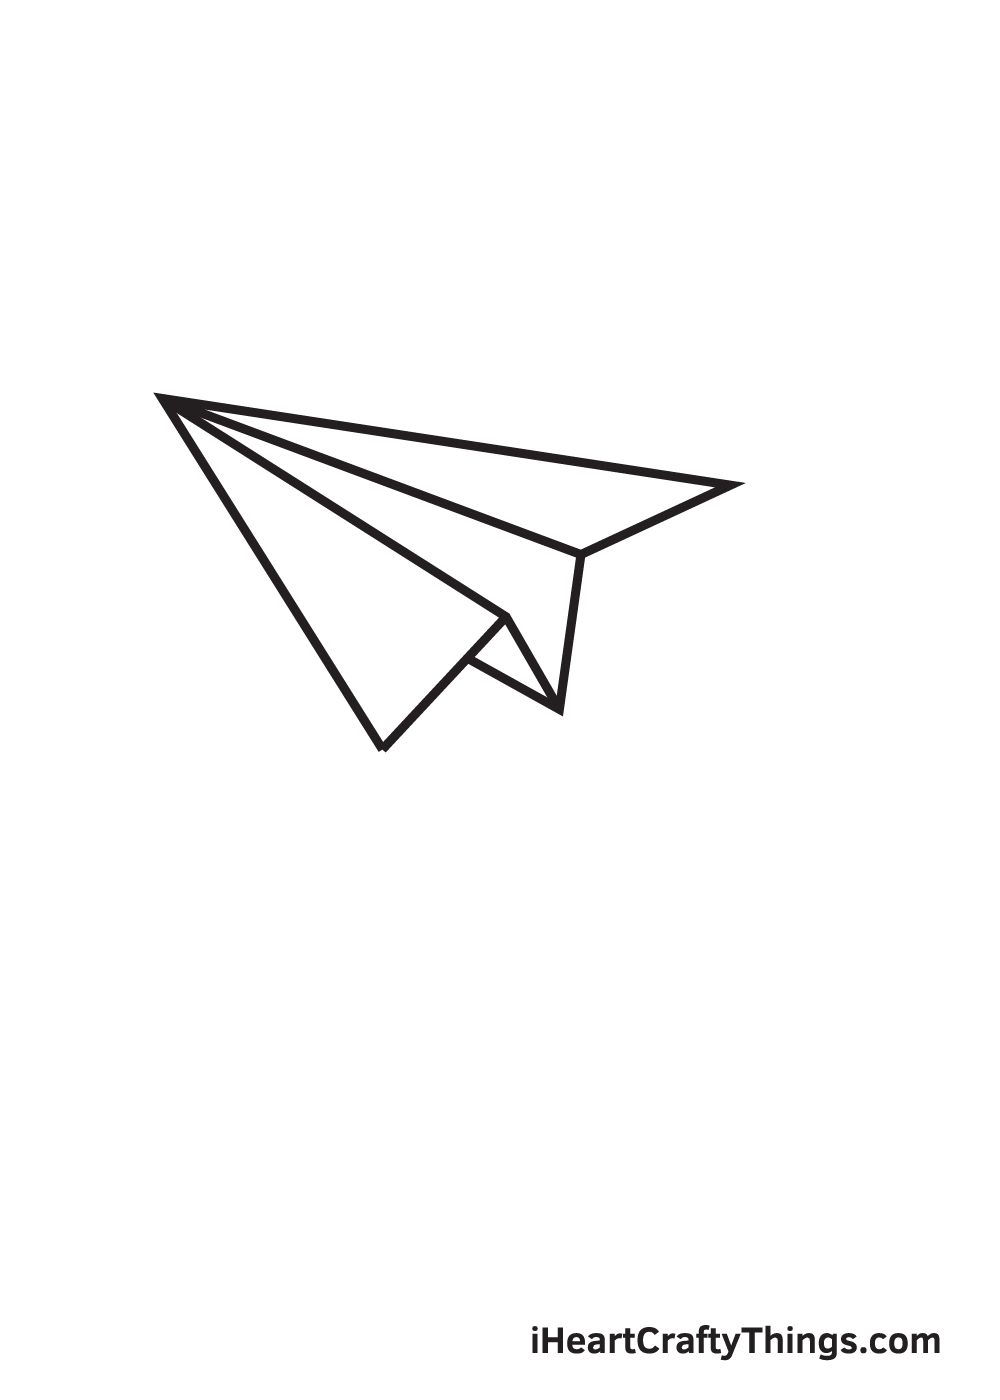 paper airplane drawing step 8